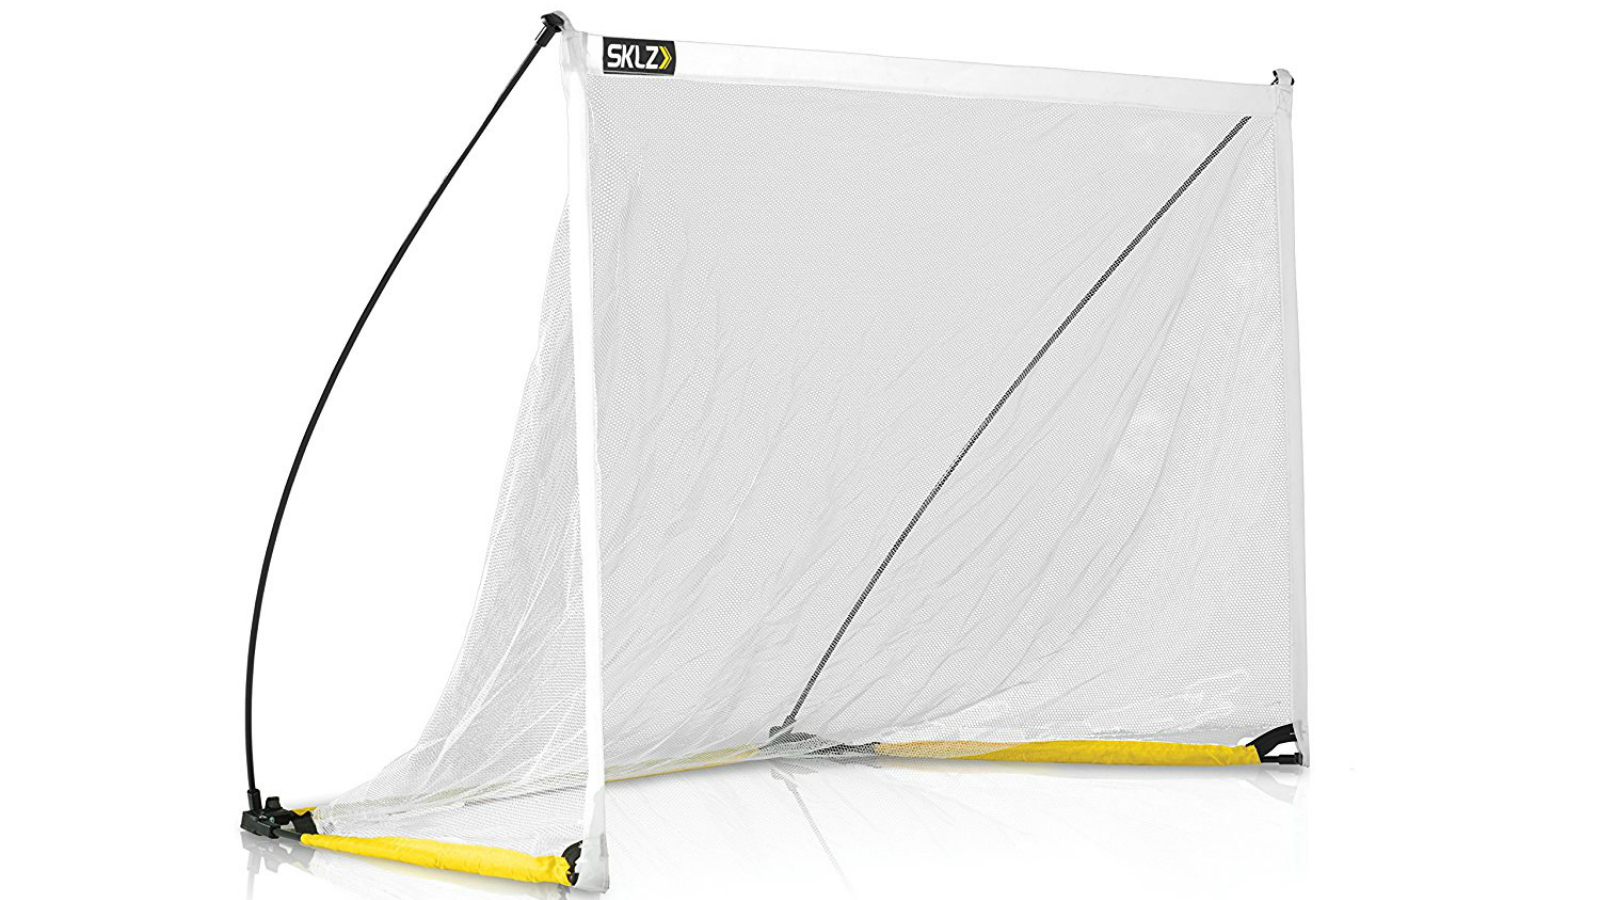 Last Minute Soccer Gifts Amazon Prime: SKLZ Quickster Superlite Soccer Goal